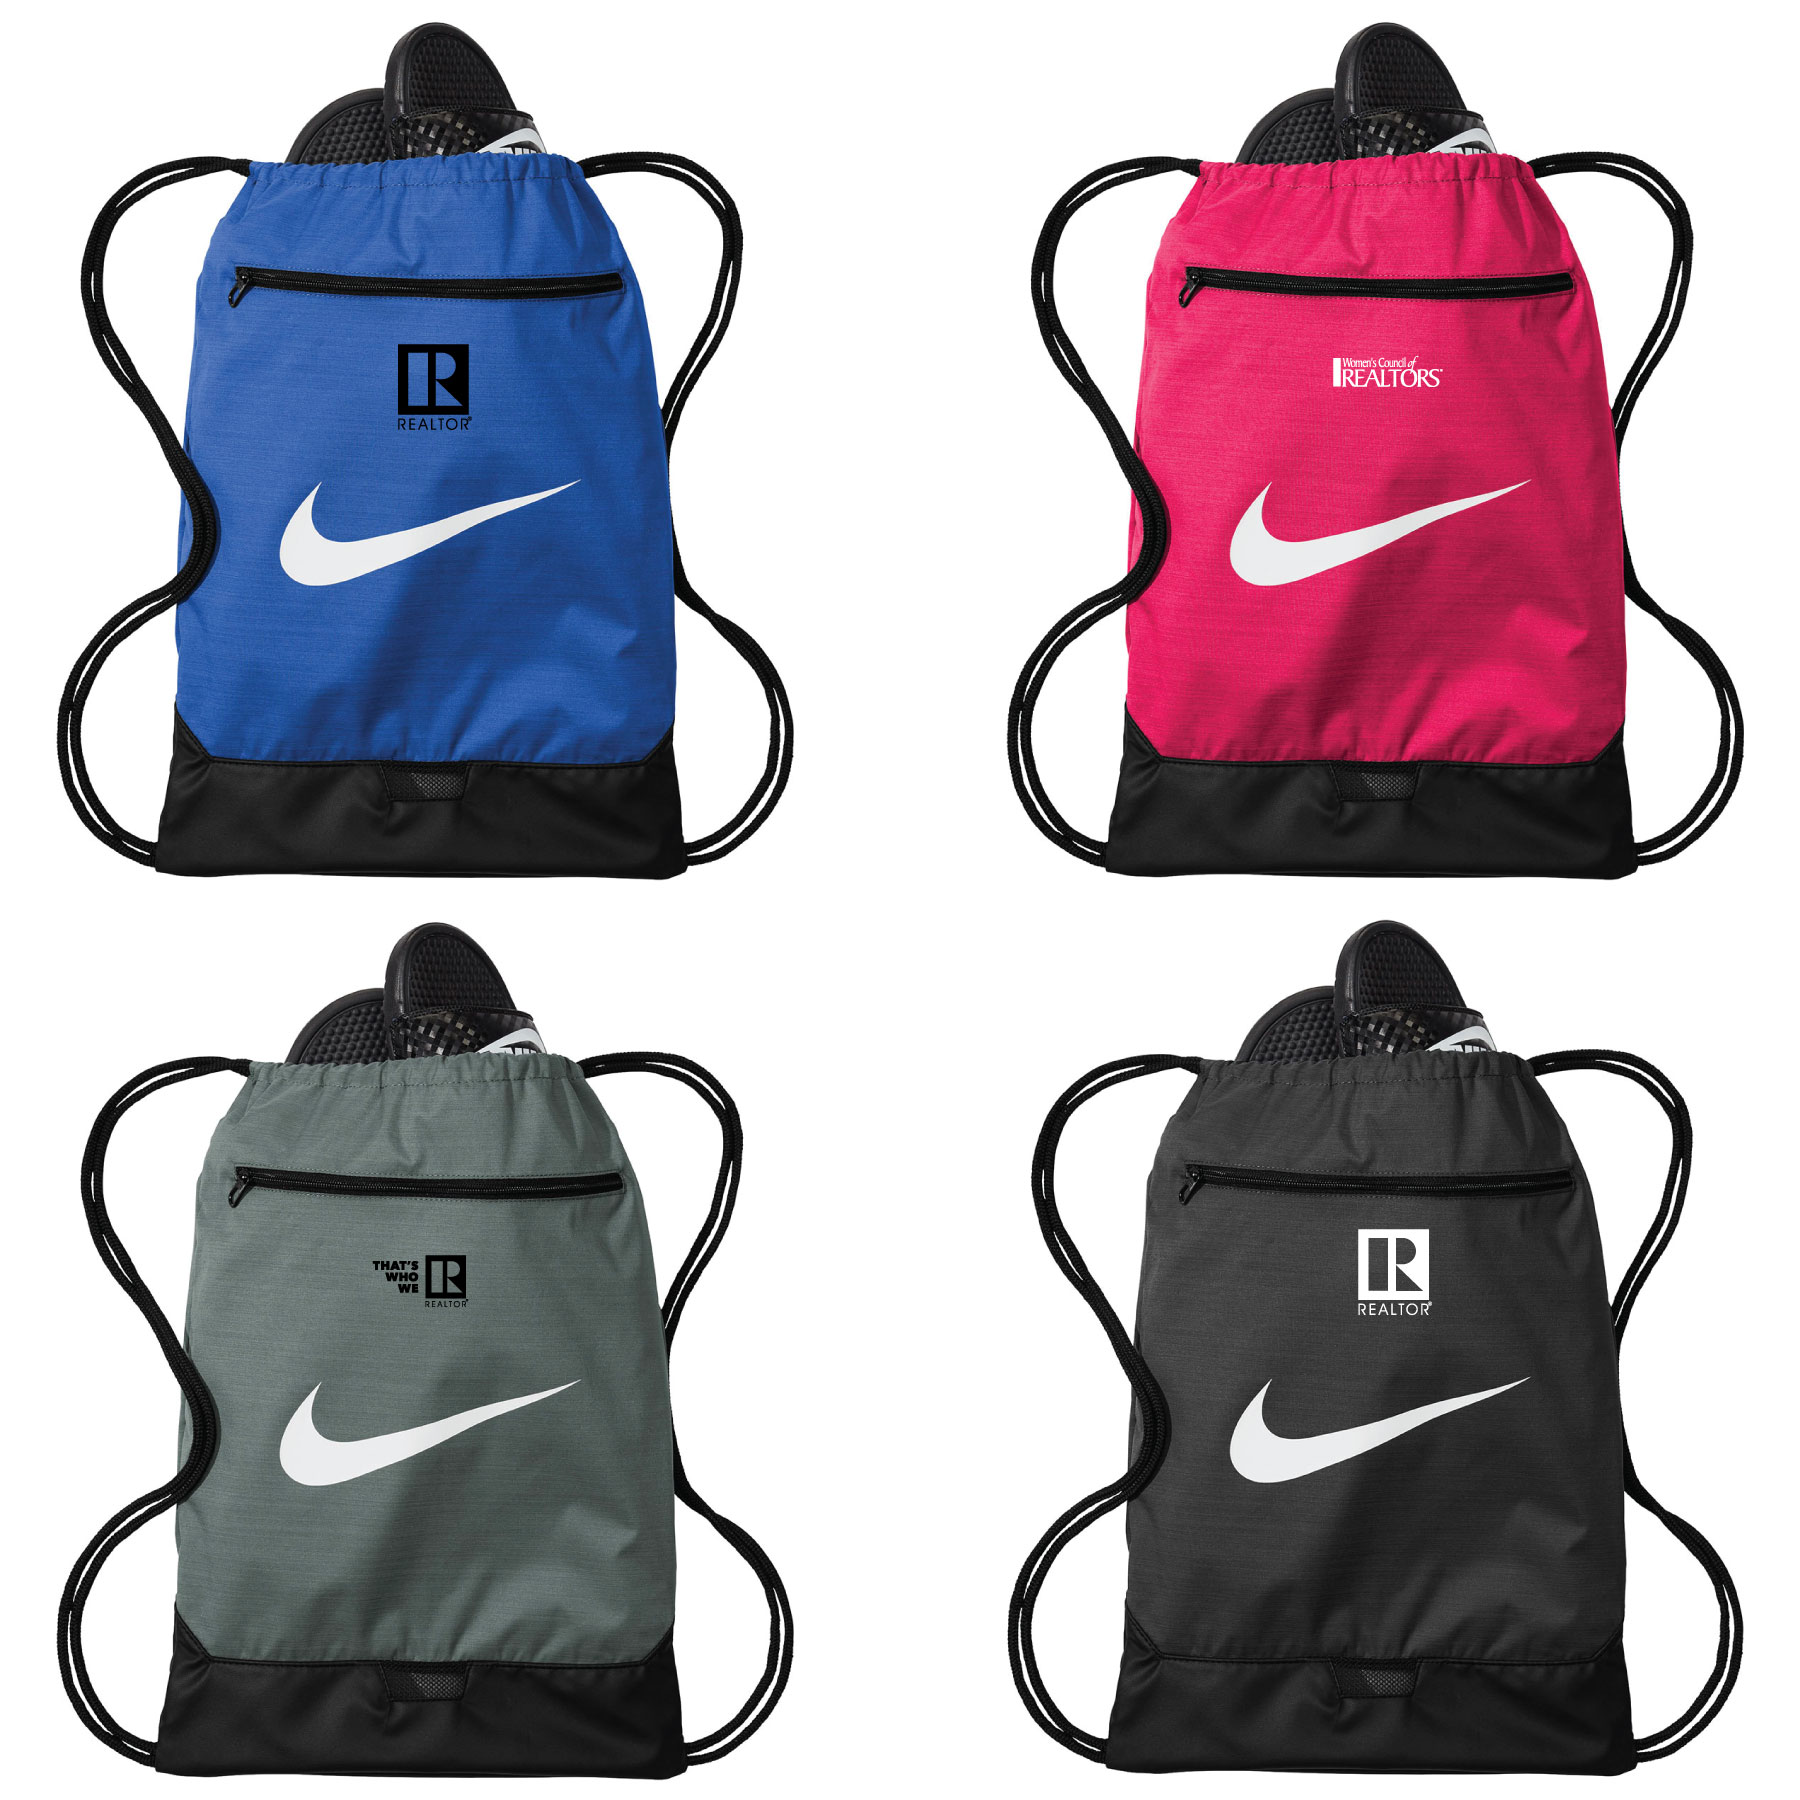 Brasilia Nike® Gym Sack Workout,Clothes,Socks,Shoes,Duffle,Duffel,Duff,Cord,Draw,String,Strings,Cords,Nikes